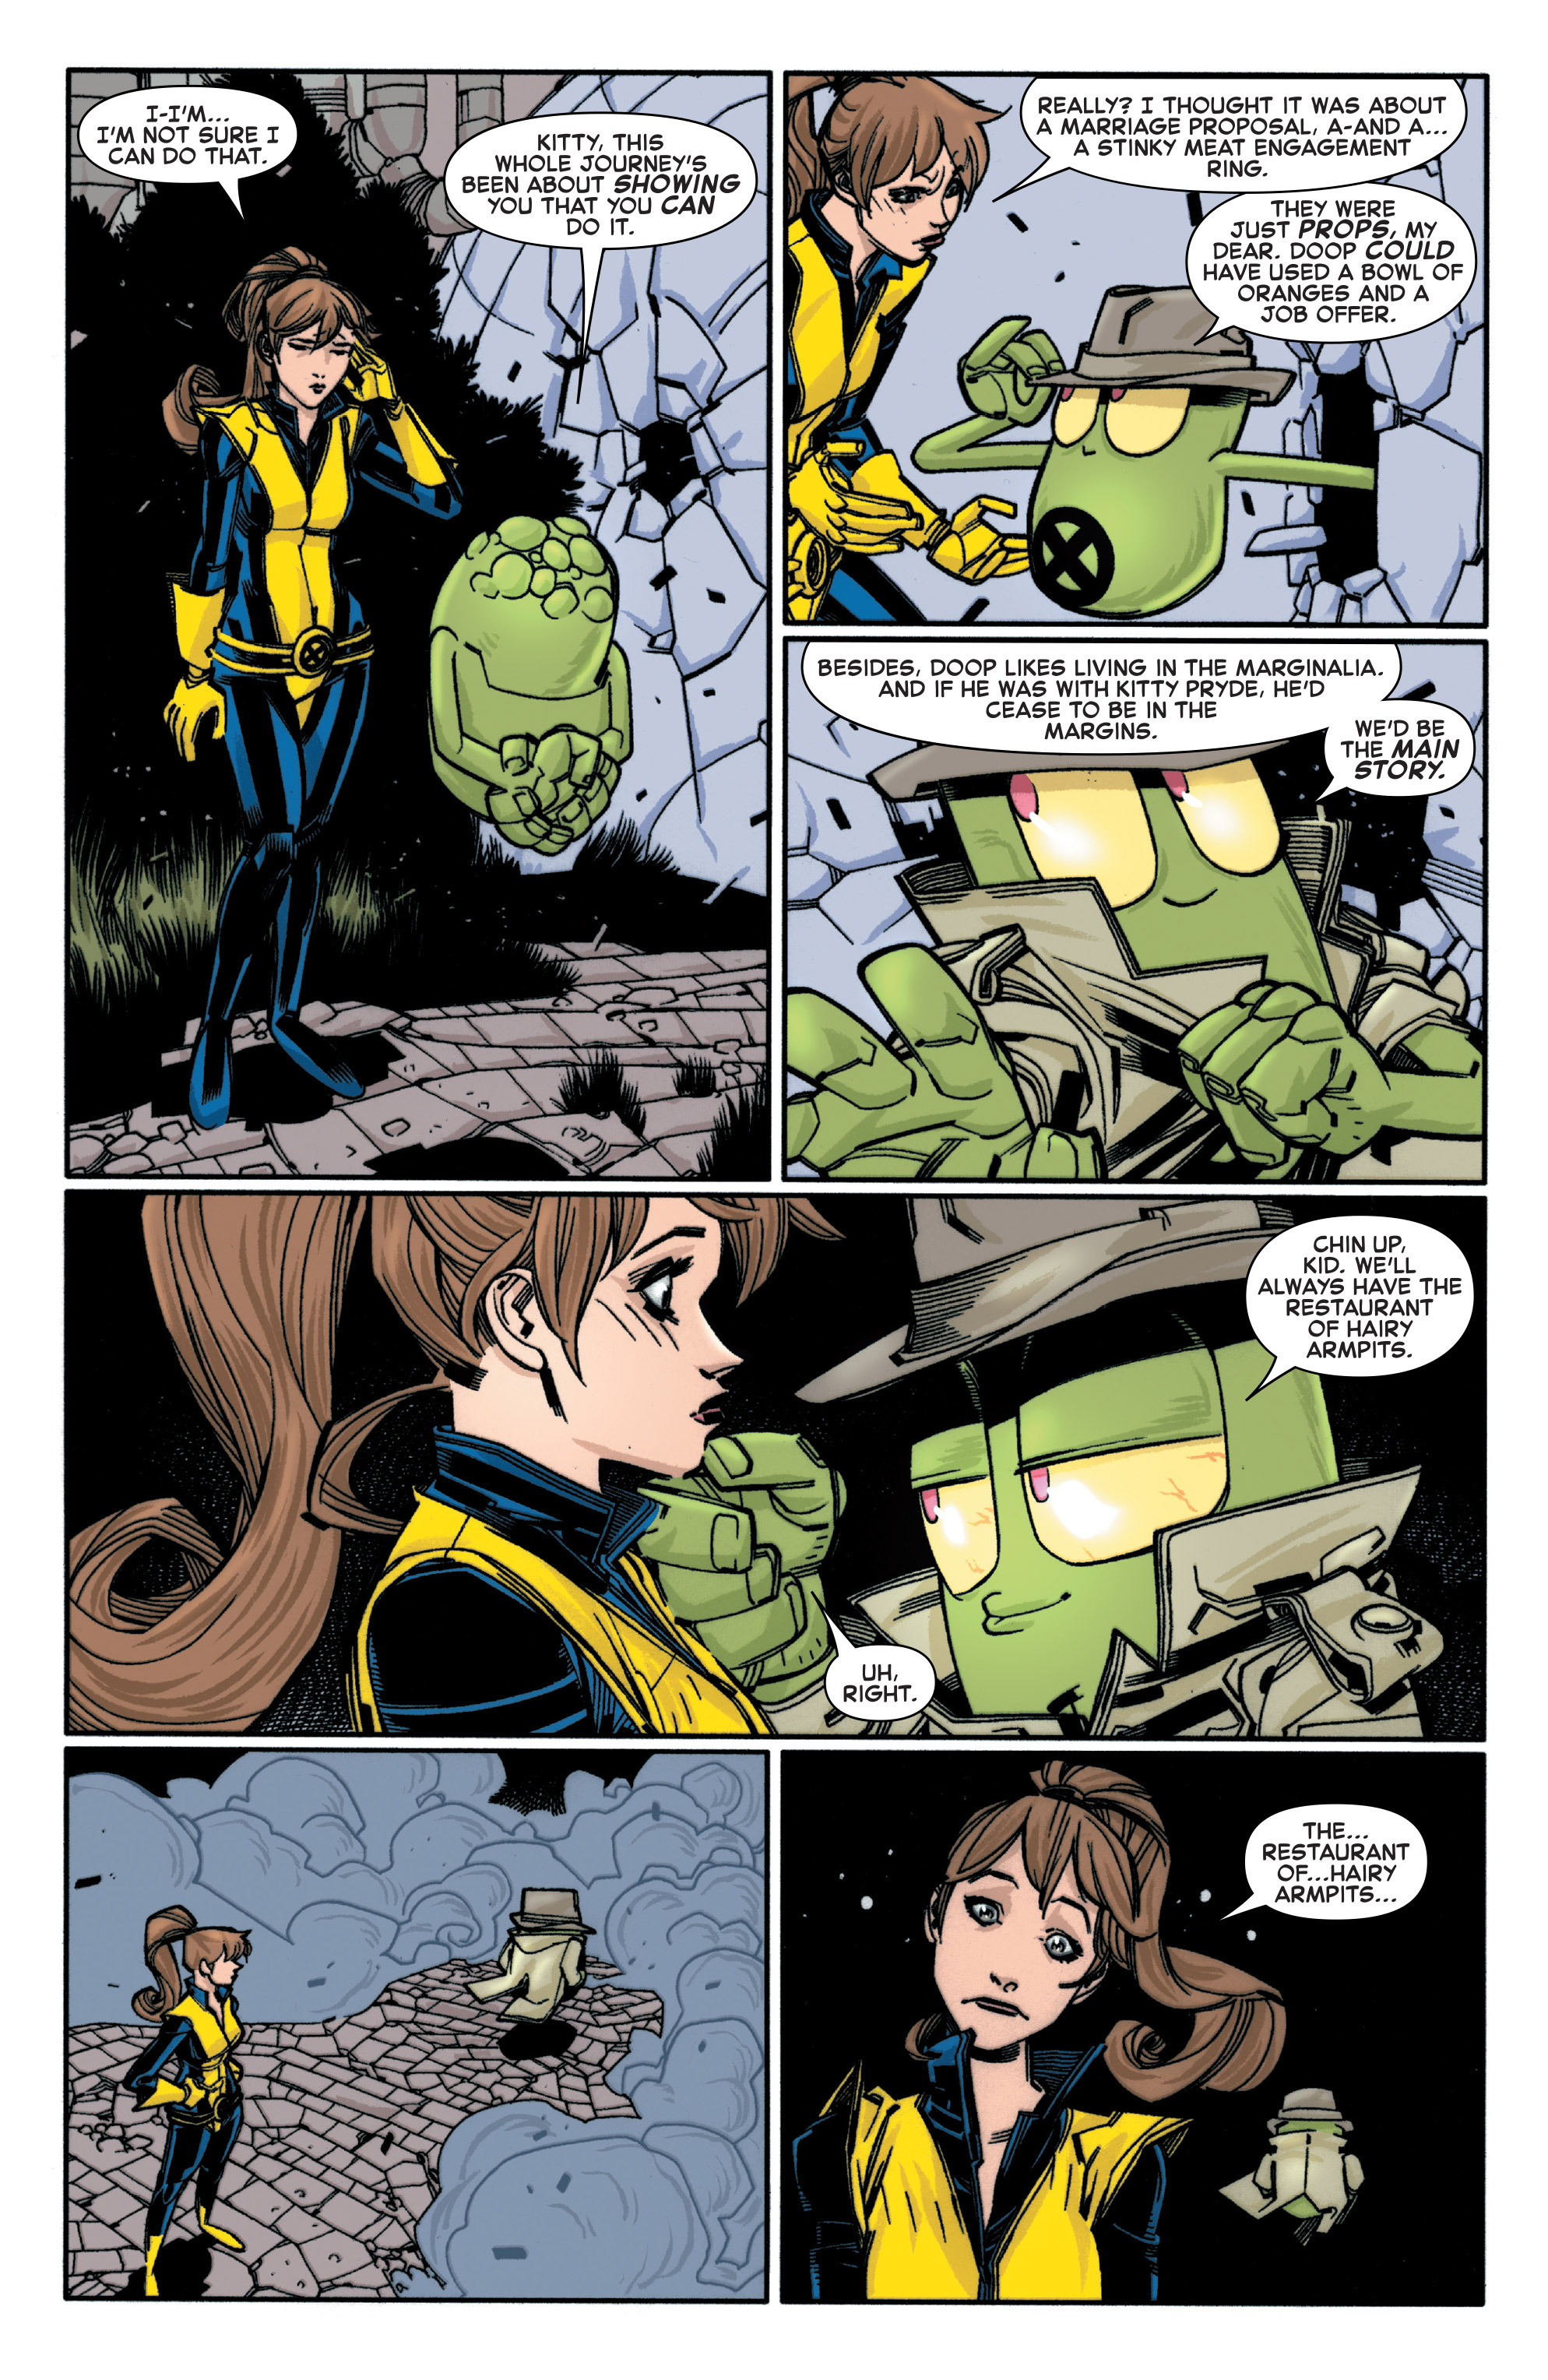 Read online All-New Doop comic -  Issue #5 - 20